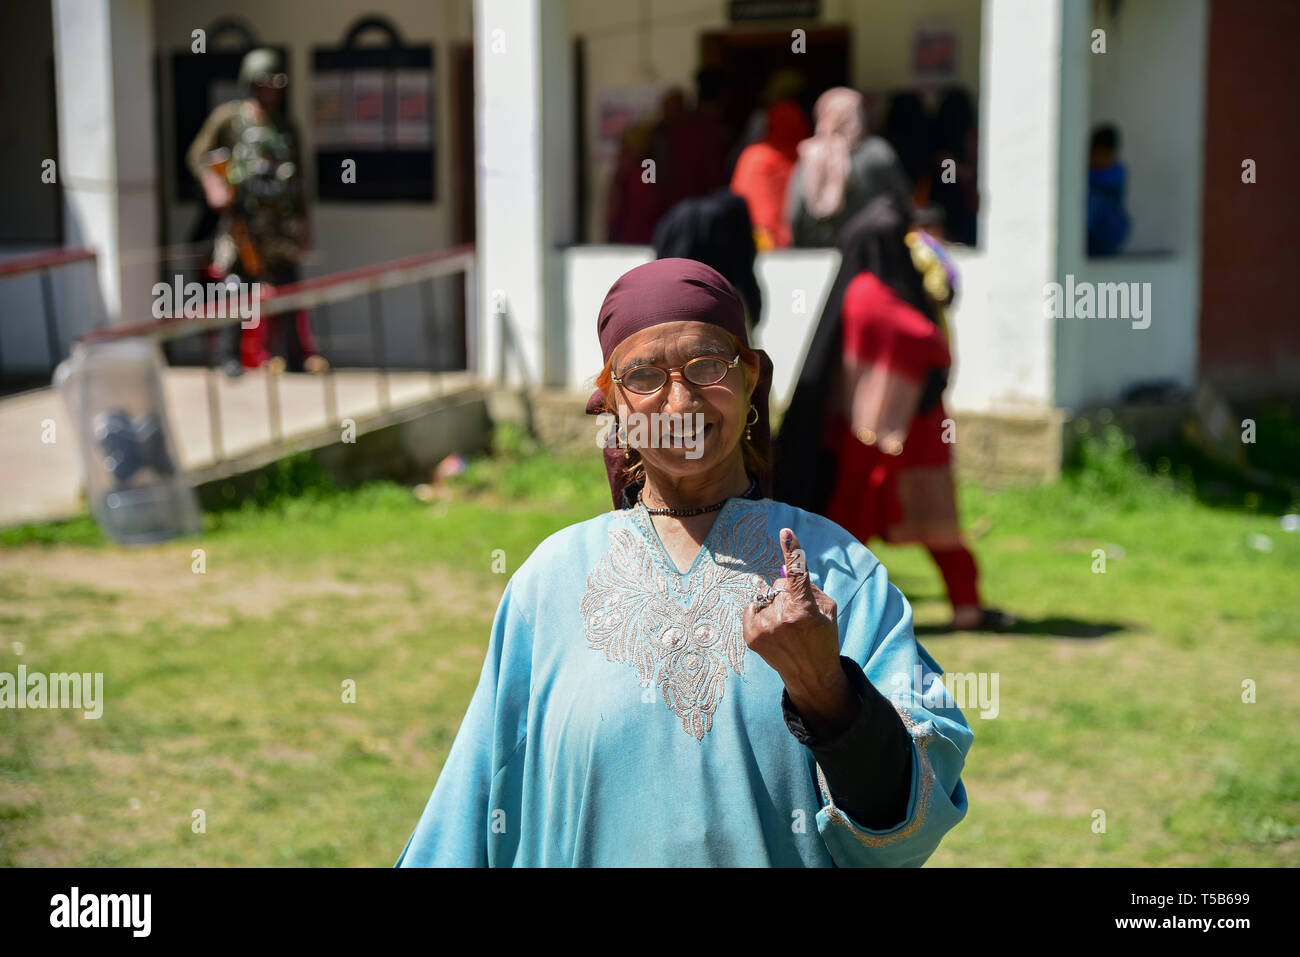 Anantnag, Jammu and Kashmir, India. 23rd Apr, 2019. A Kashmiri voter seen showing off his inked finger after casting her vote at a polling station in Anantnag, South Kashmir.On the third phase of India's Parliamentary elections, Indians went to polls amid complete shut down and internet gag. Credit: Idrees Abbas/SOPA Images/ZUMA Wire/Alamy Live News Stock Photo